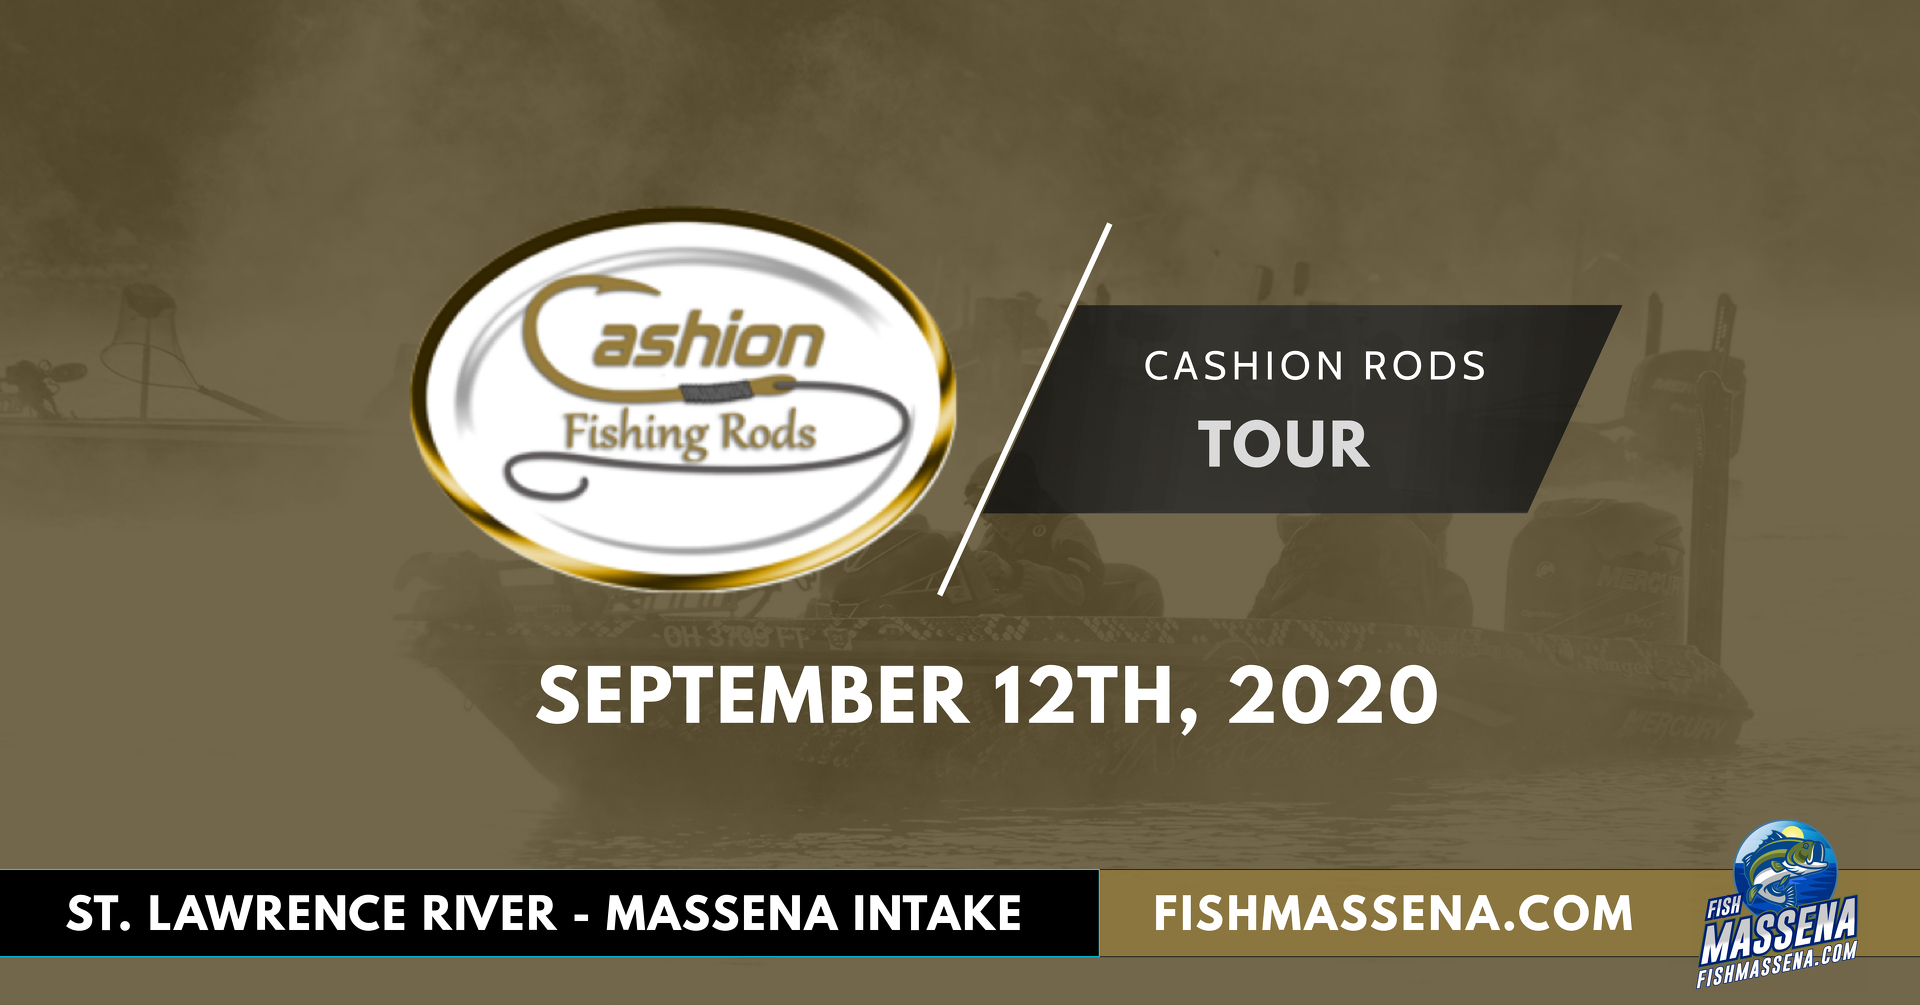 Cashion Rods Tour